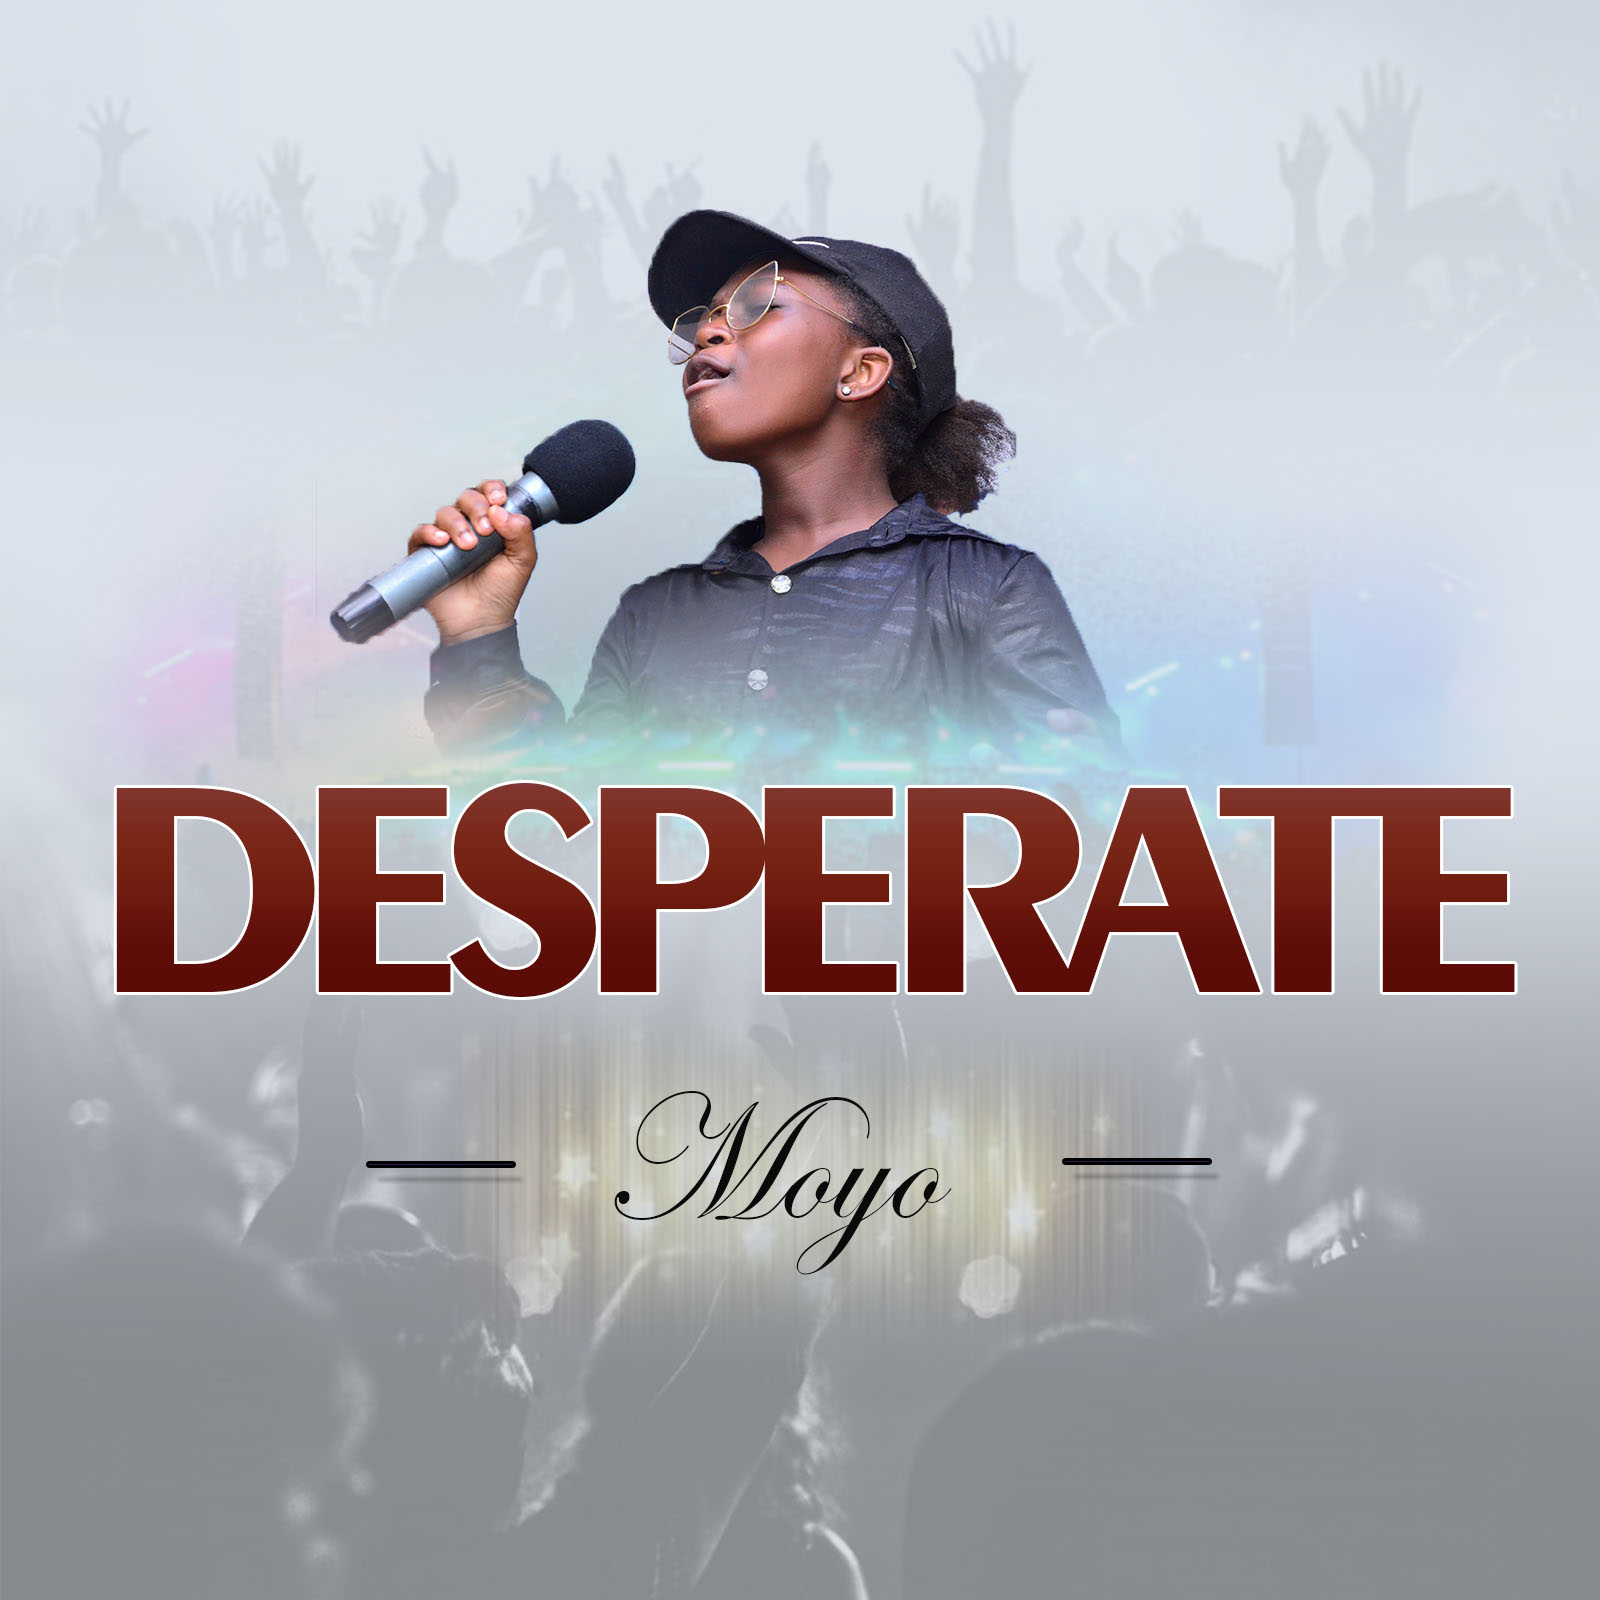 DESPERATE - Moyo